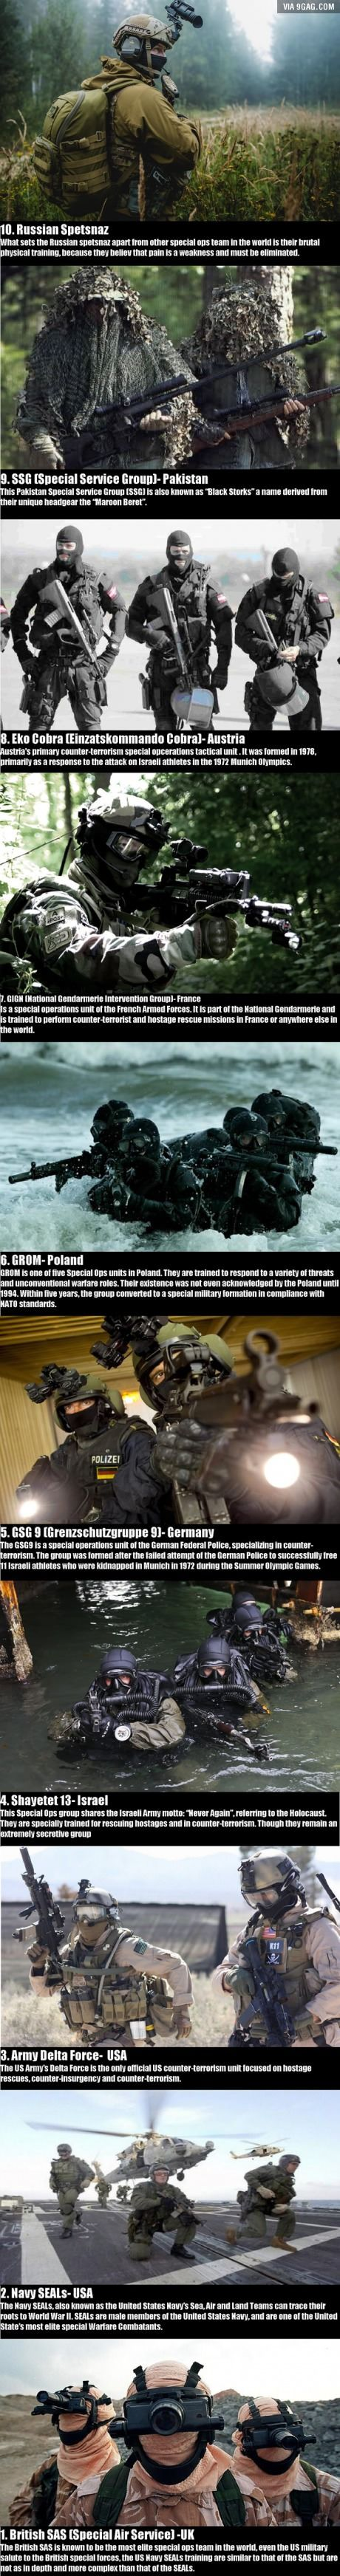 Top Ten Special ops team in the world maybe if you agree with the order.  i dont